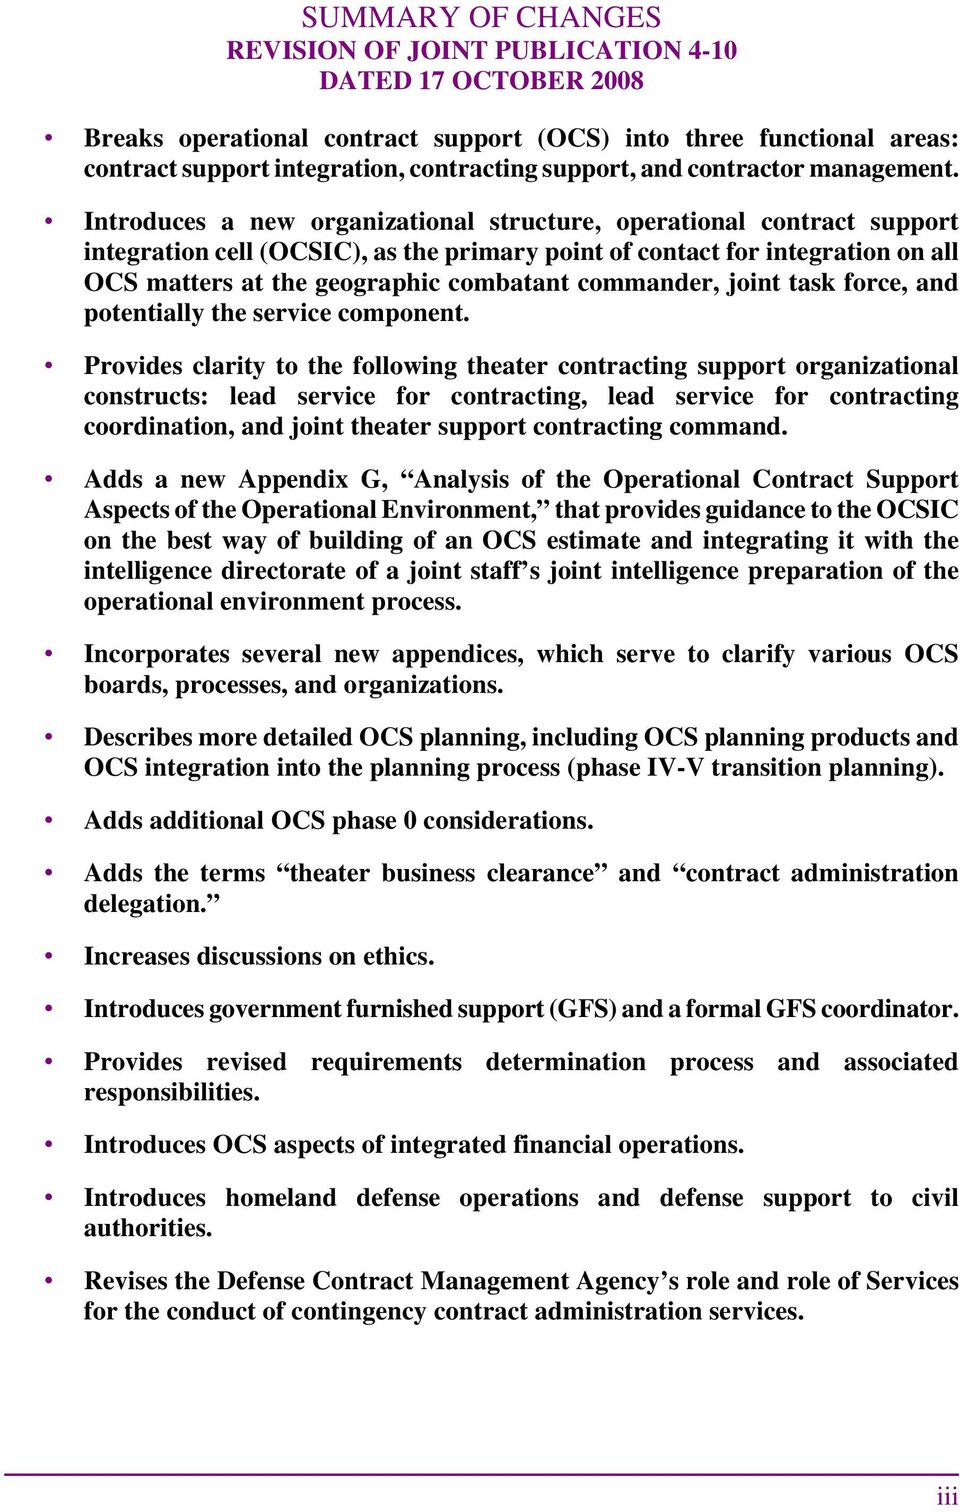 Introduces a new organizational structure, operational contract support integration cell (OCSIC), as the primary point of contact for integration on all OCS matters at the geographic combatant